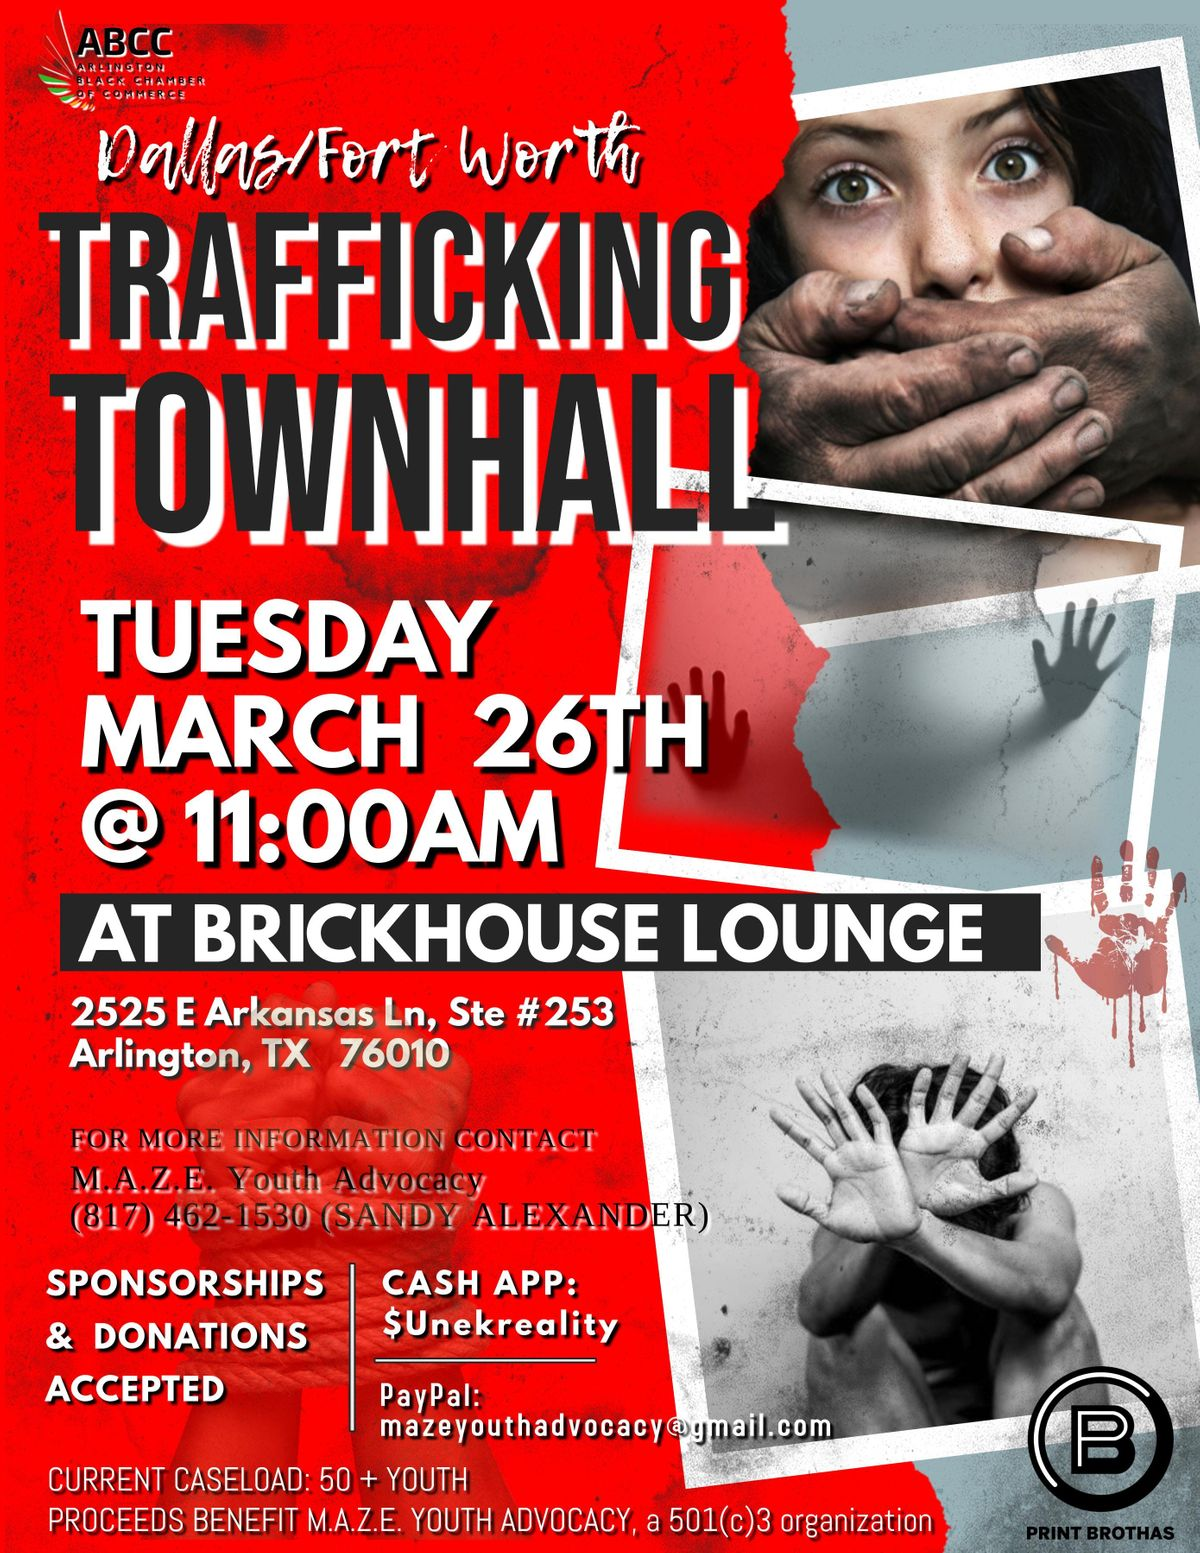 DallasFort Worth Trafficking Townhall